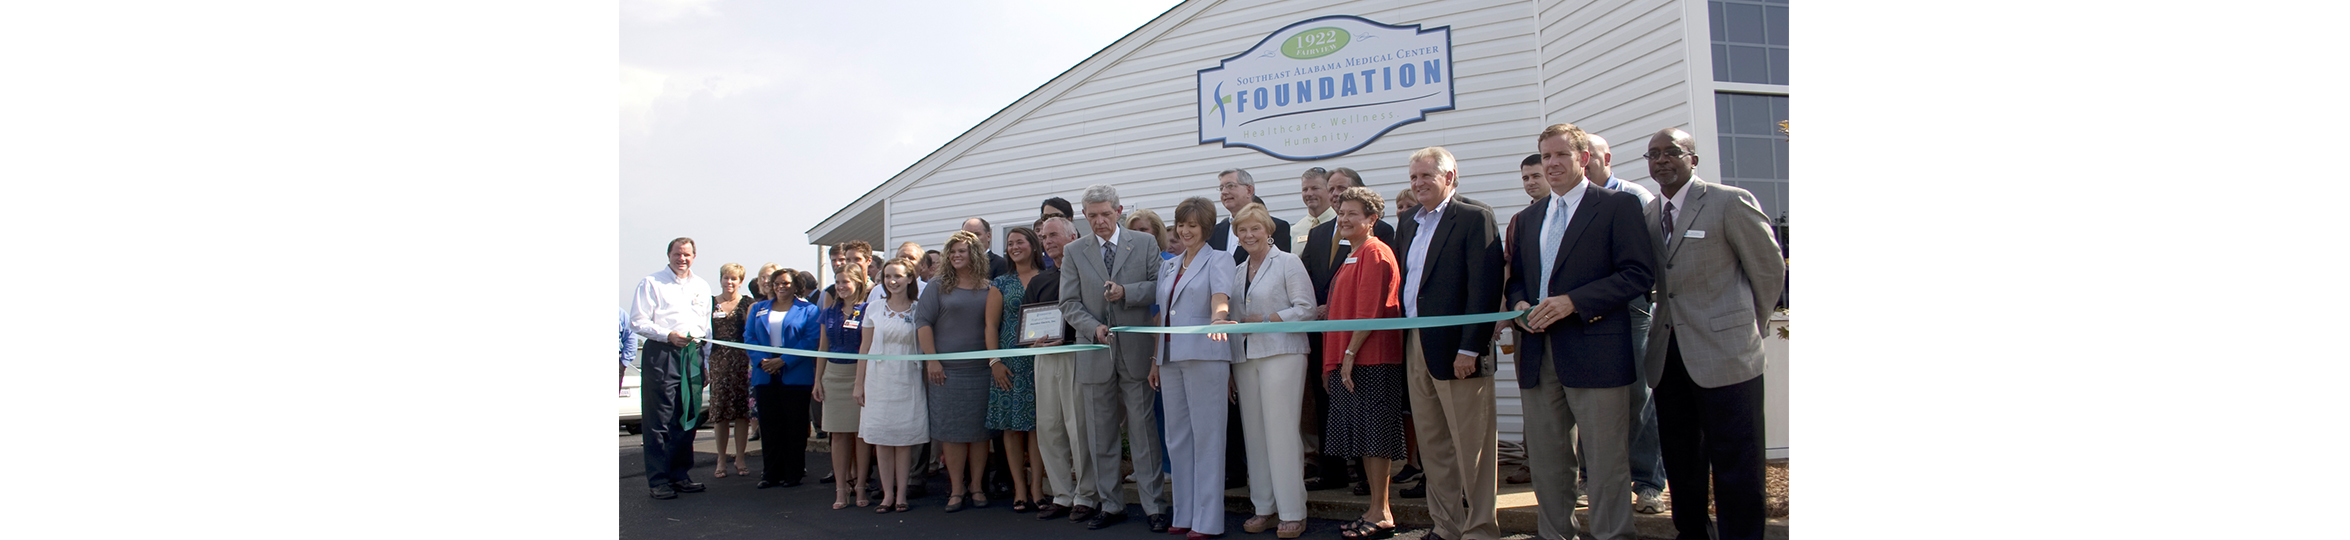 FoundationRibbonCutting